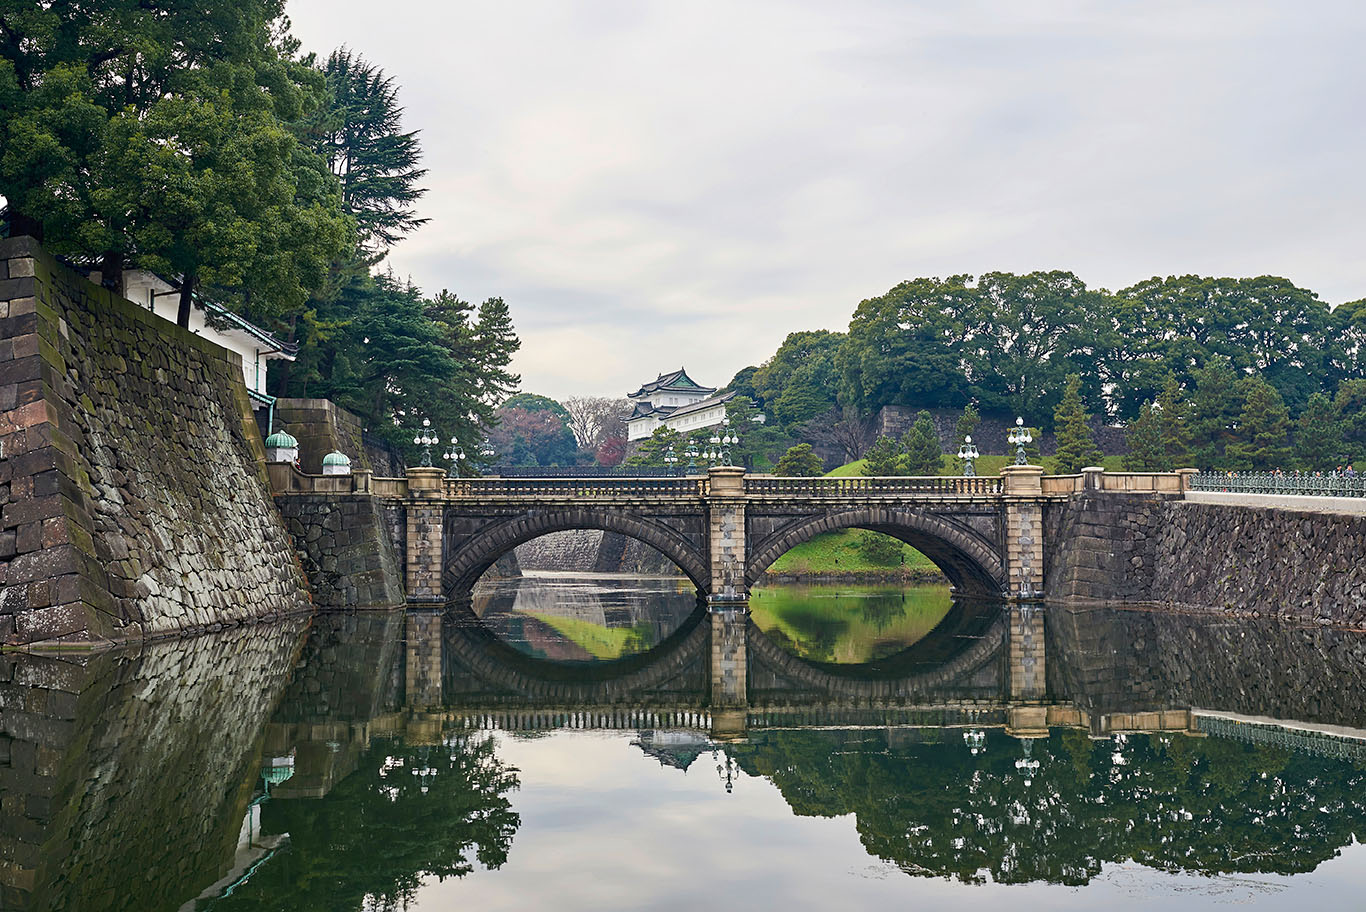 bridge over still water with Japanese-style buildings in distance